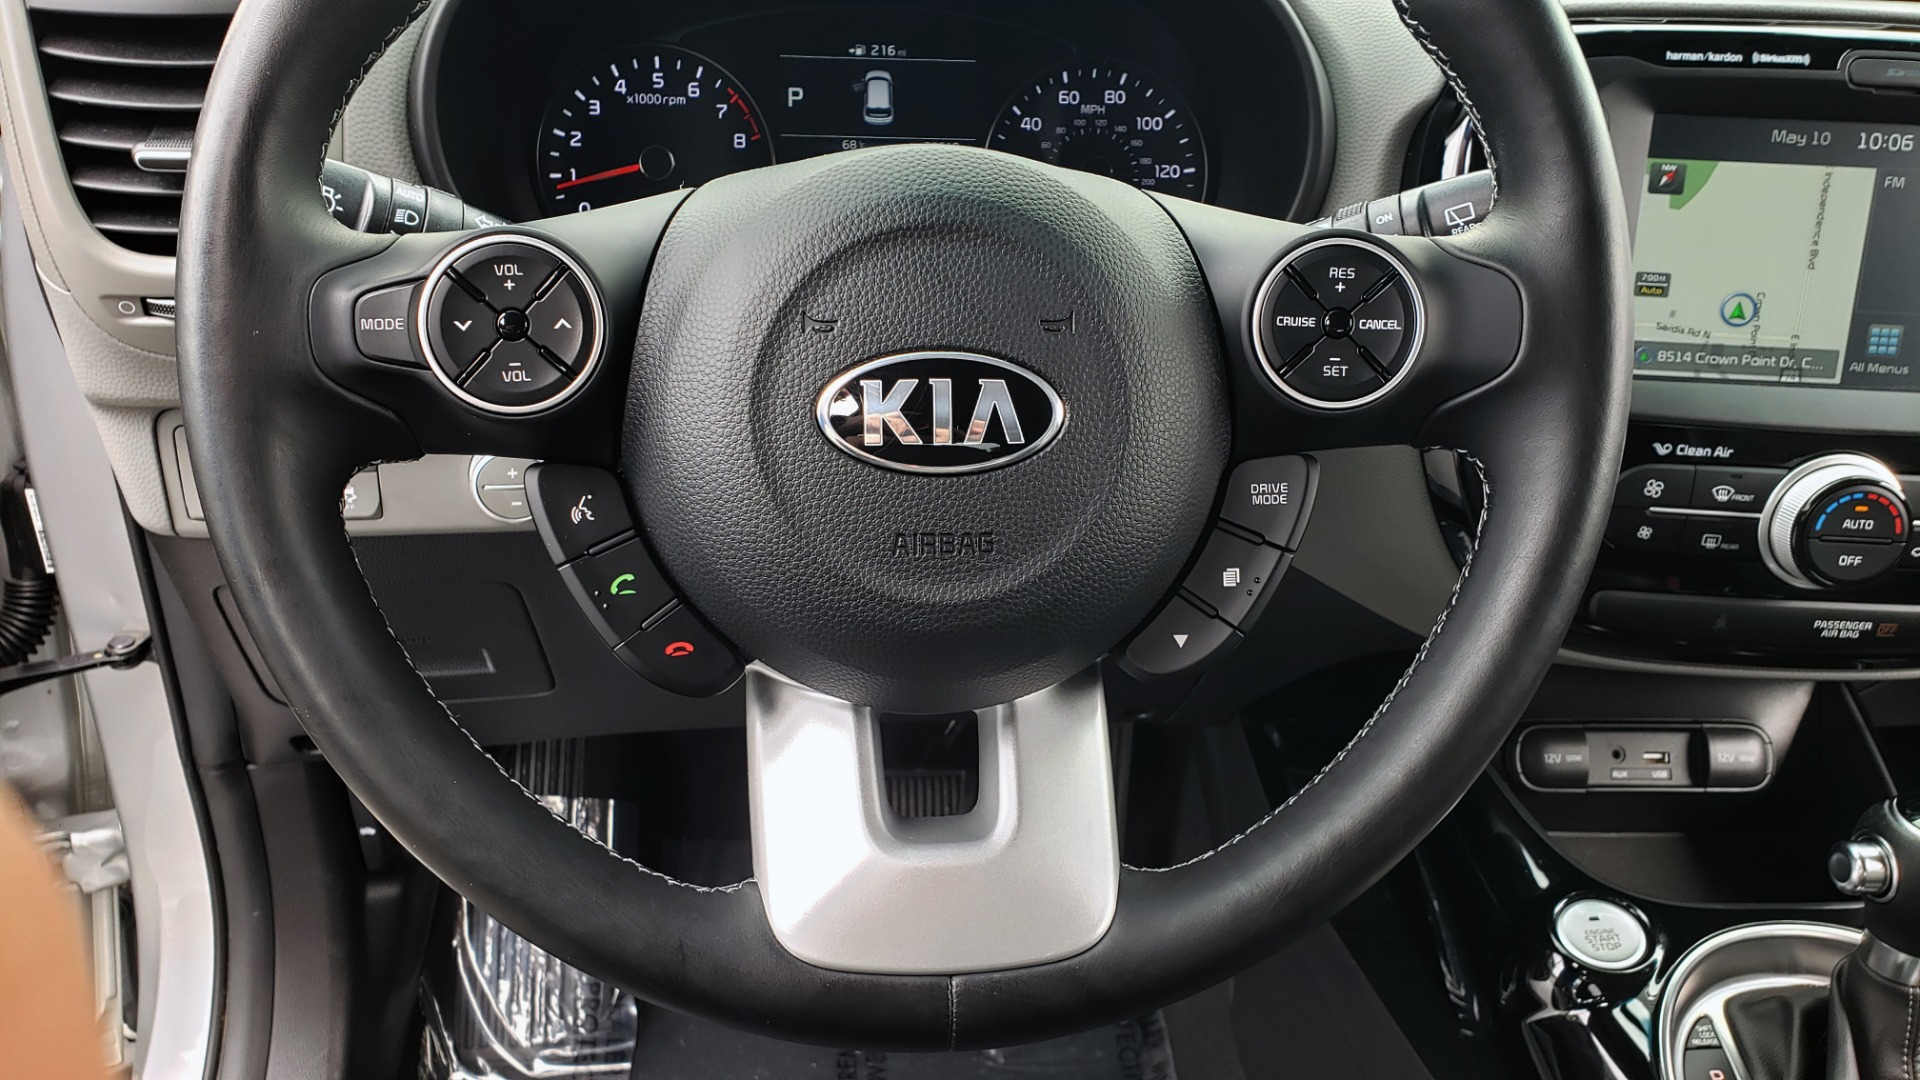 Used 2017 Kia SOUL PLUS / NAV / SUNROOF / LEATHER / HTD STS / REARVIEW for sale $16,995 at Formula Imports in Charlotte NC 28227 39